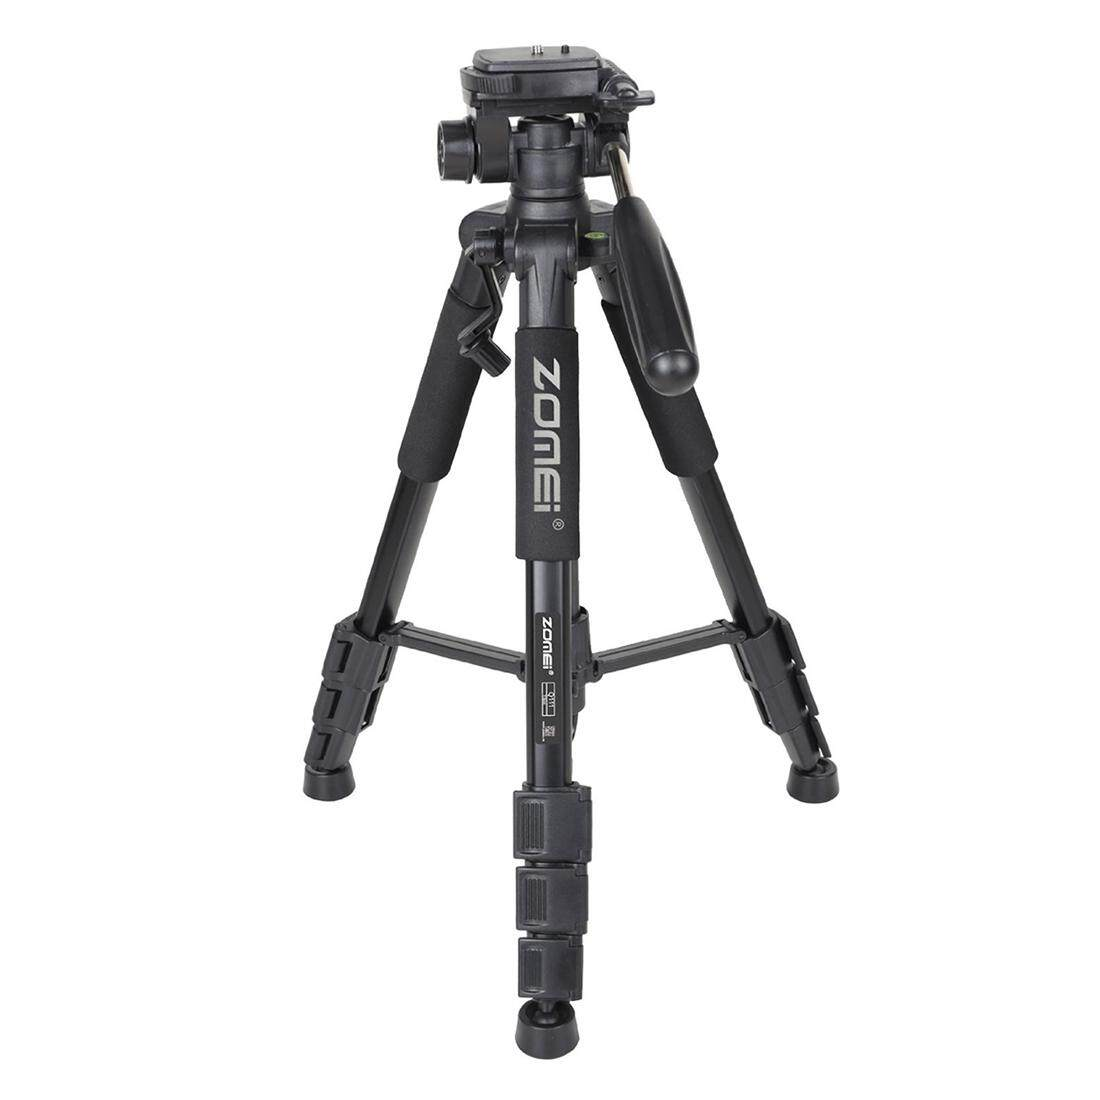 ZOMEI Q111 Portable Pro 55-inch Tripod Compact Lightweight Camera Stand with Quick Release Pan Head Plate for Digital SLR Canon EOS Nikon Sony Panasonic Samsung Black